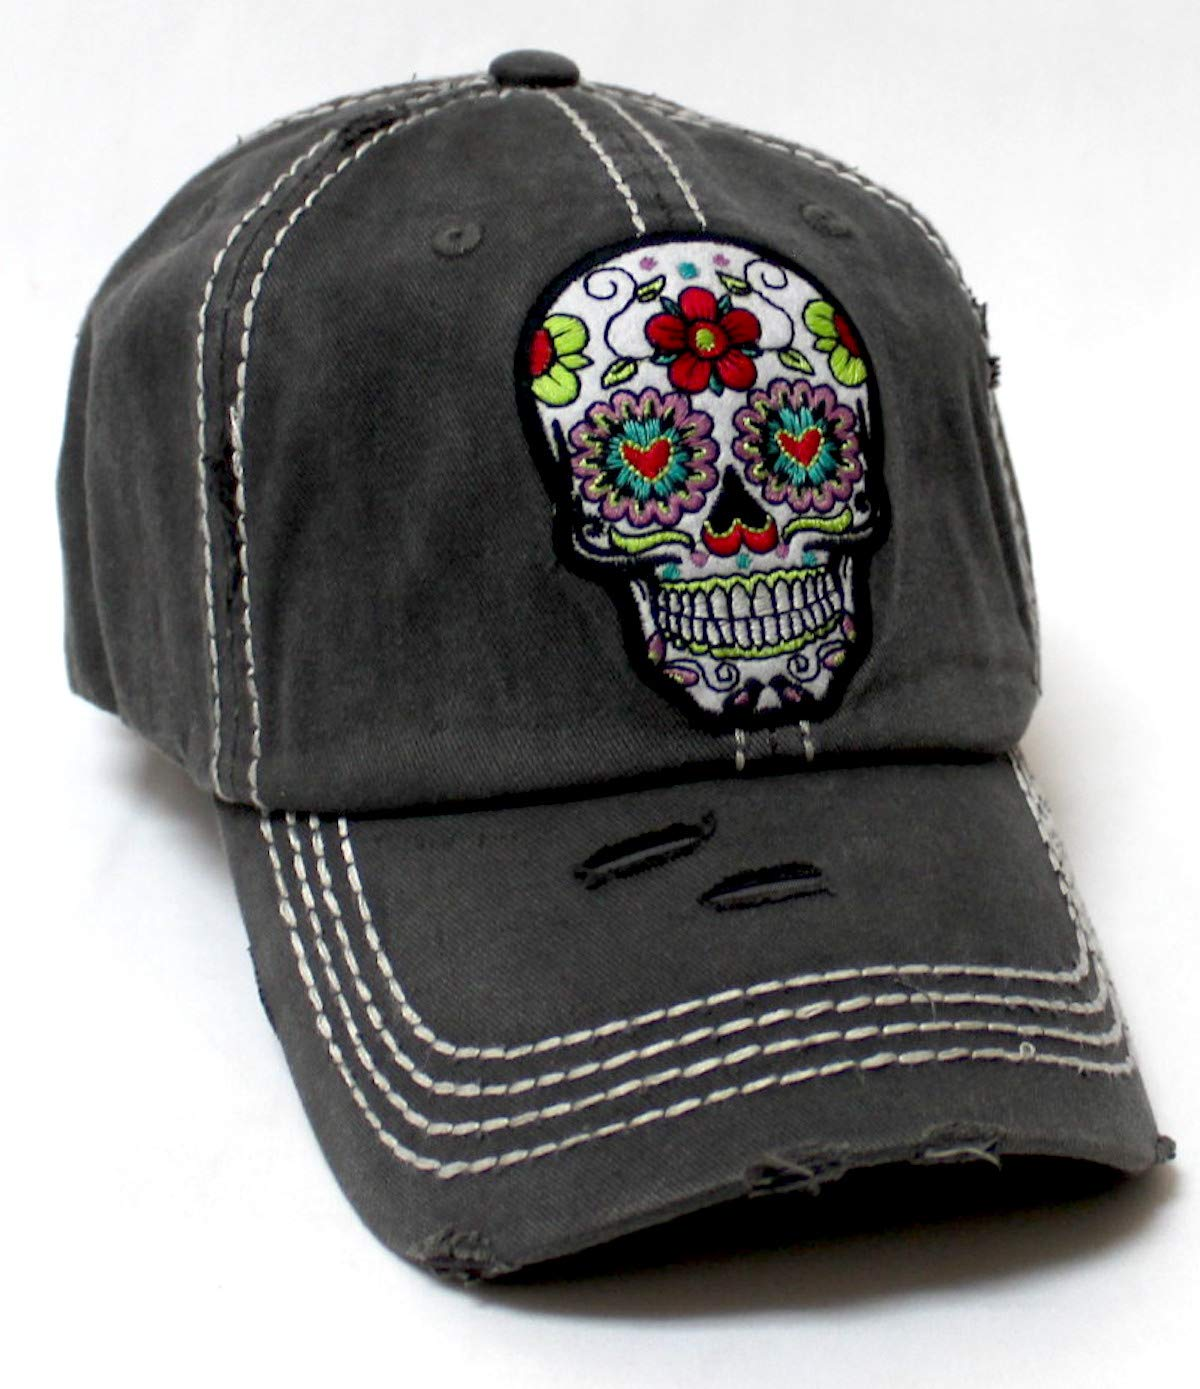 Women's Vintage Hat Sugar Skull Monogram Patch Embroidery Baseball Cap, Distressed American Black